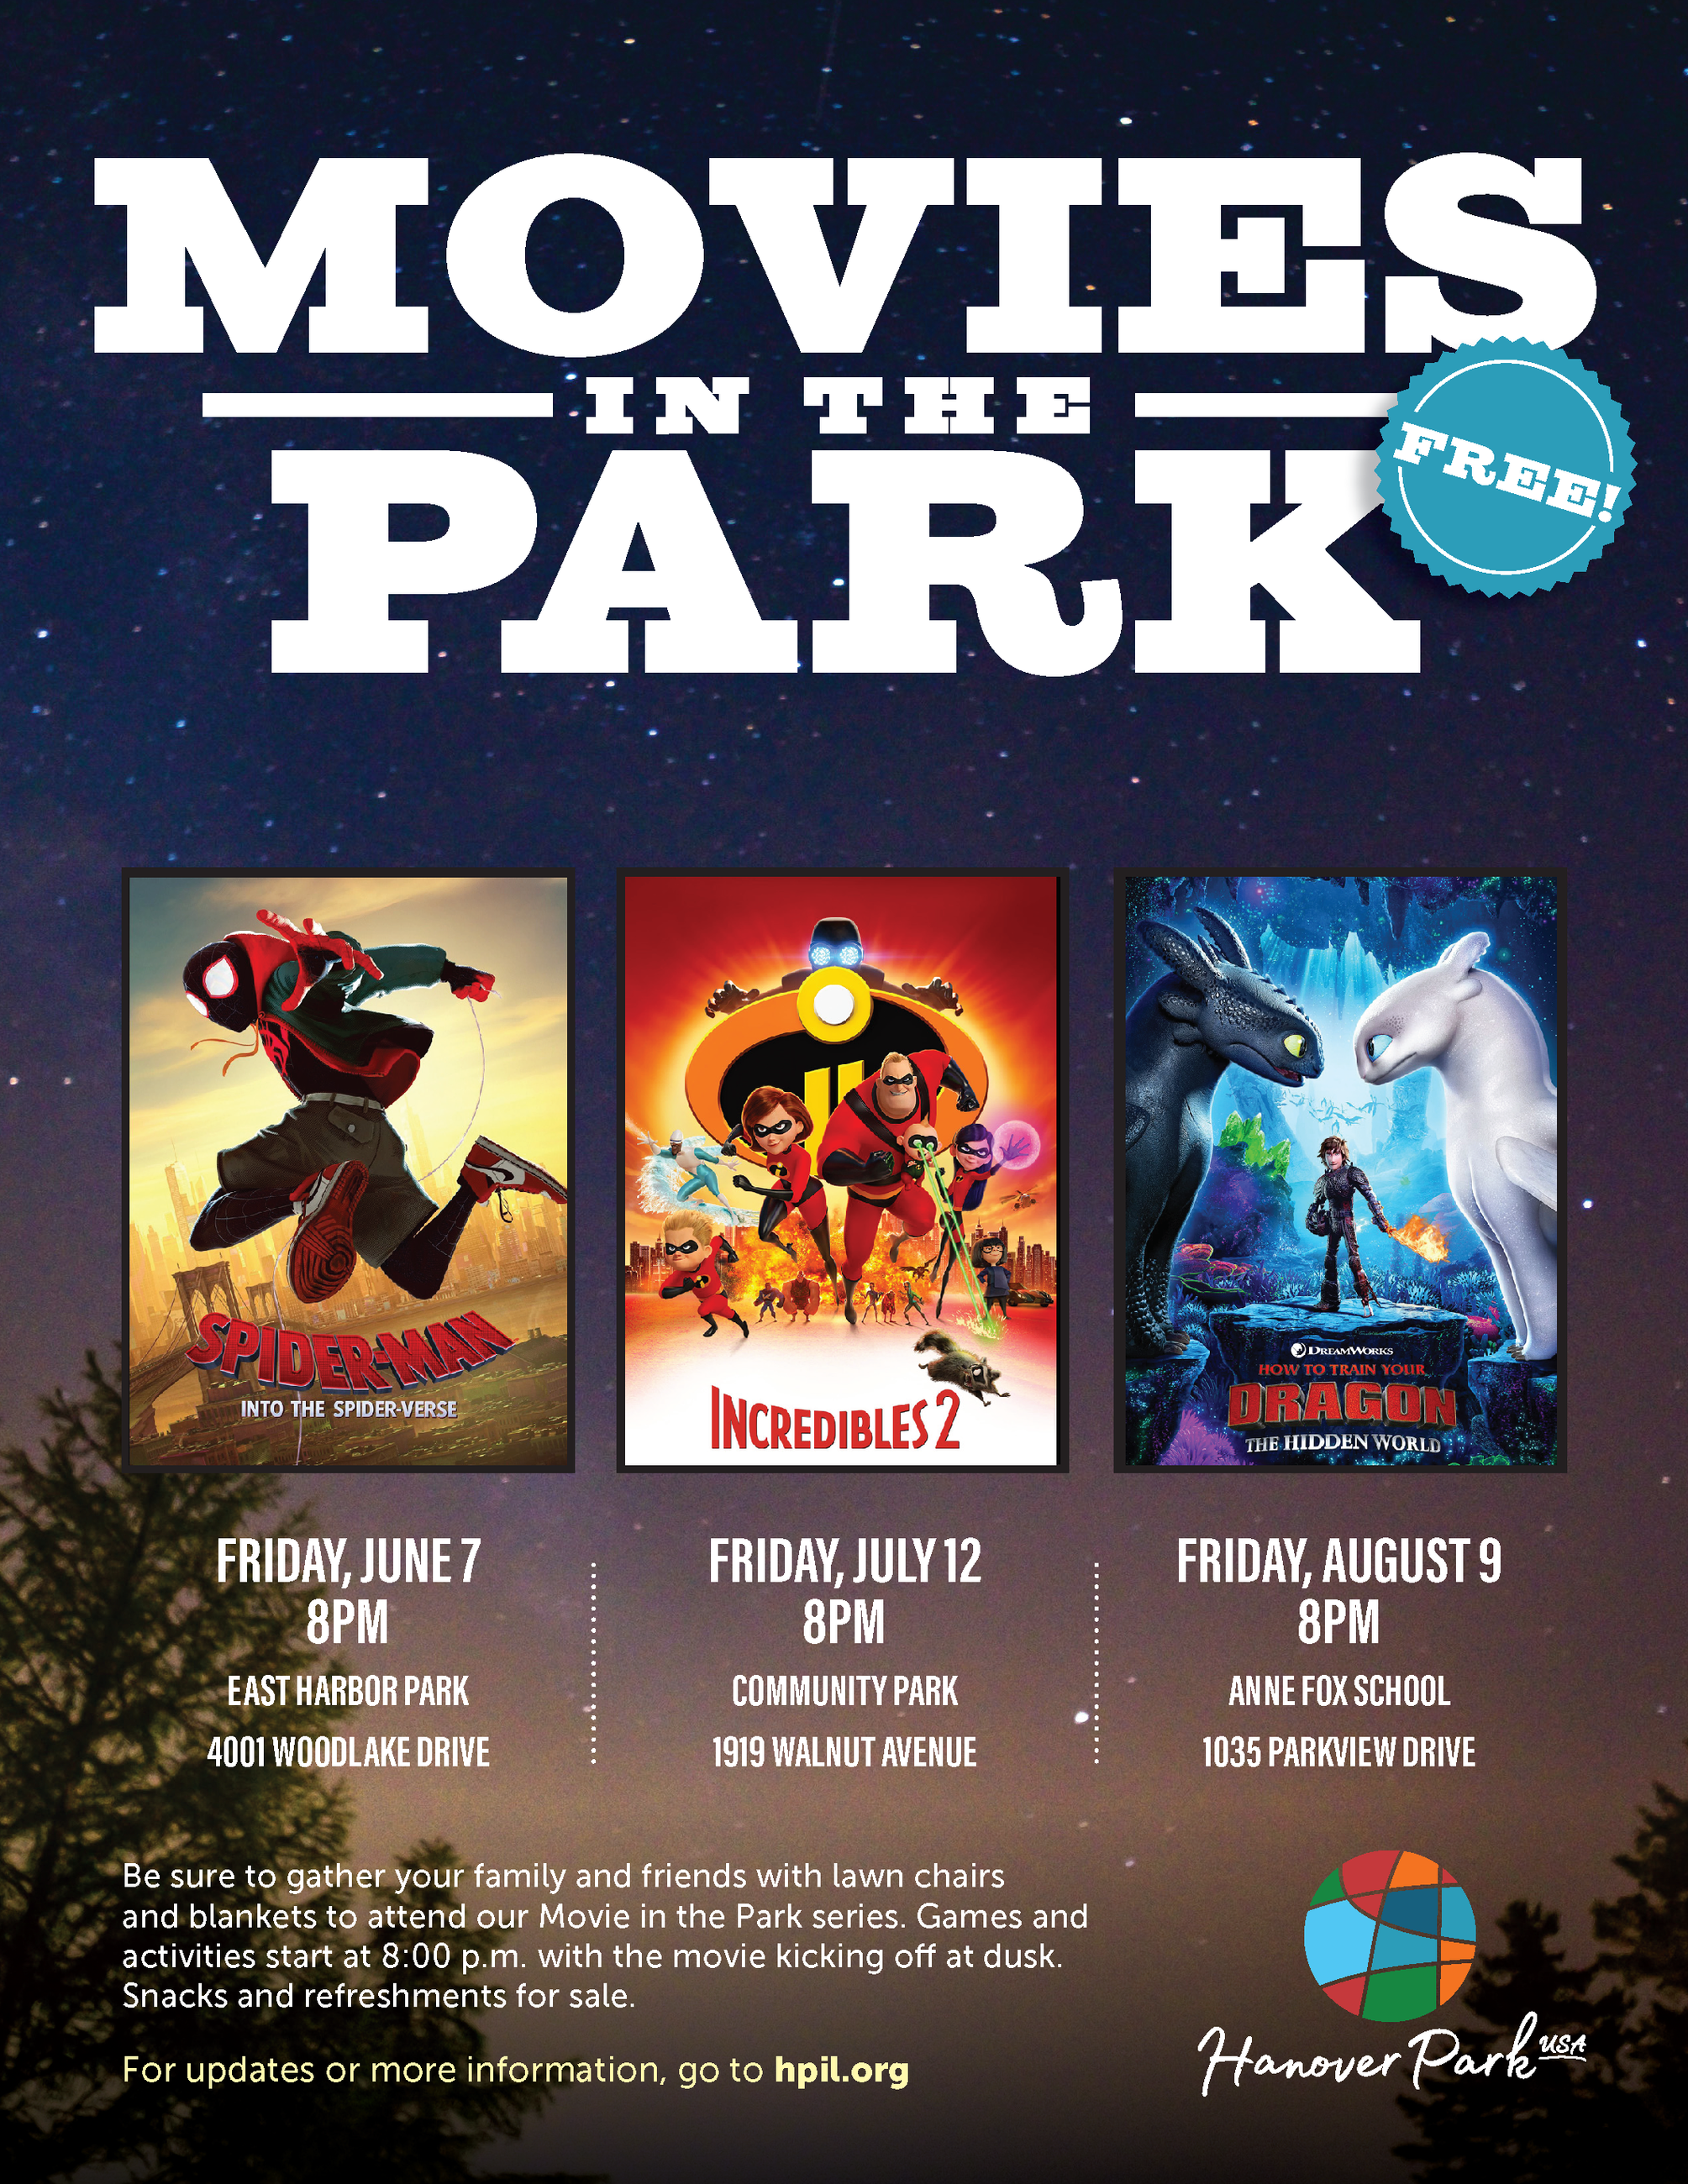 Movie in the Park flyer